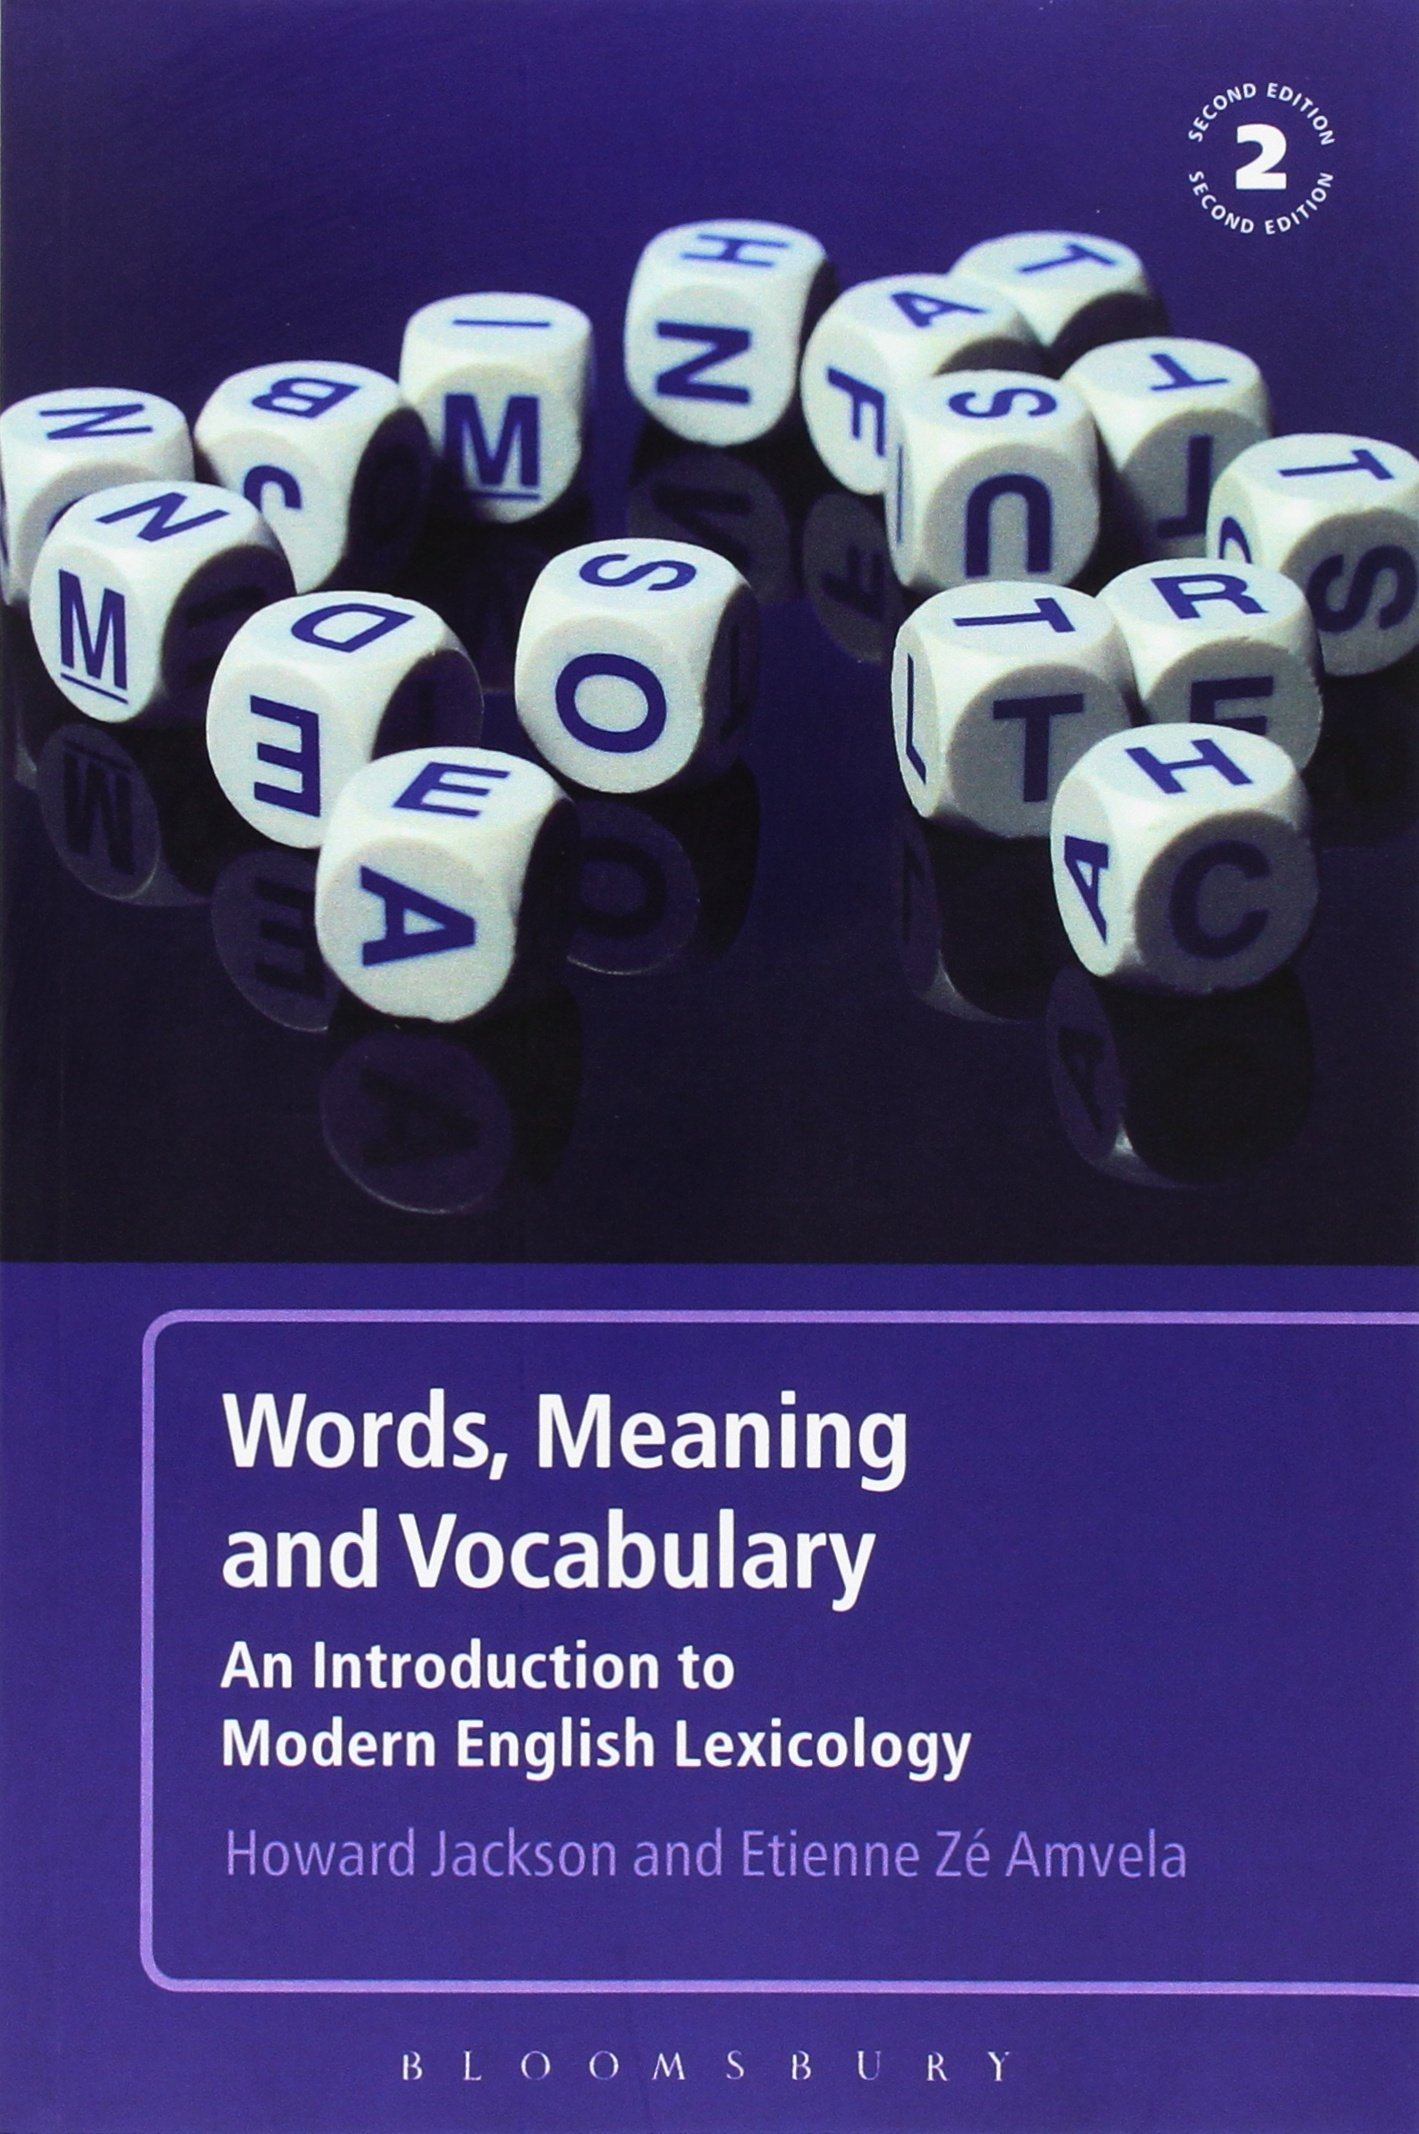 Words, Meaning and Vocabulary 2nd Edition: An Introduction to Modern  English Lexicology: Amazon.co.uk: Howard Jackson, Etienne Z. Amvela:  9780826490186: ...